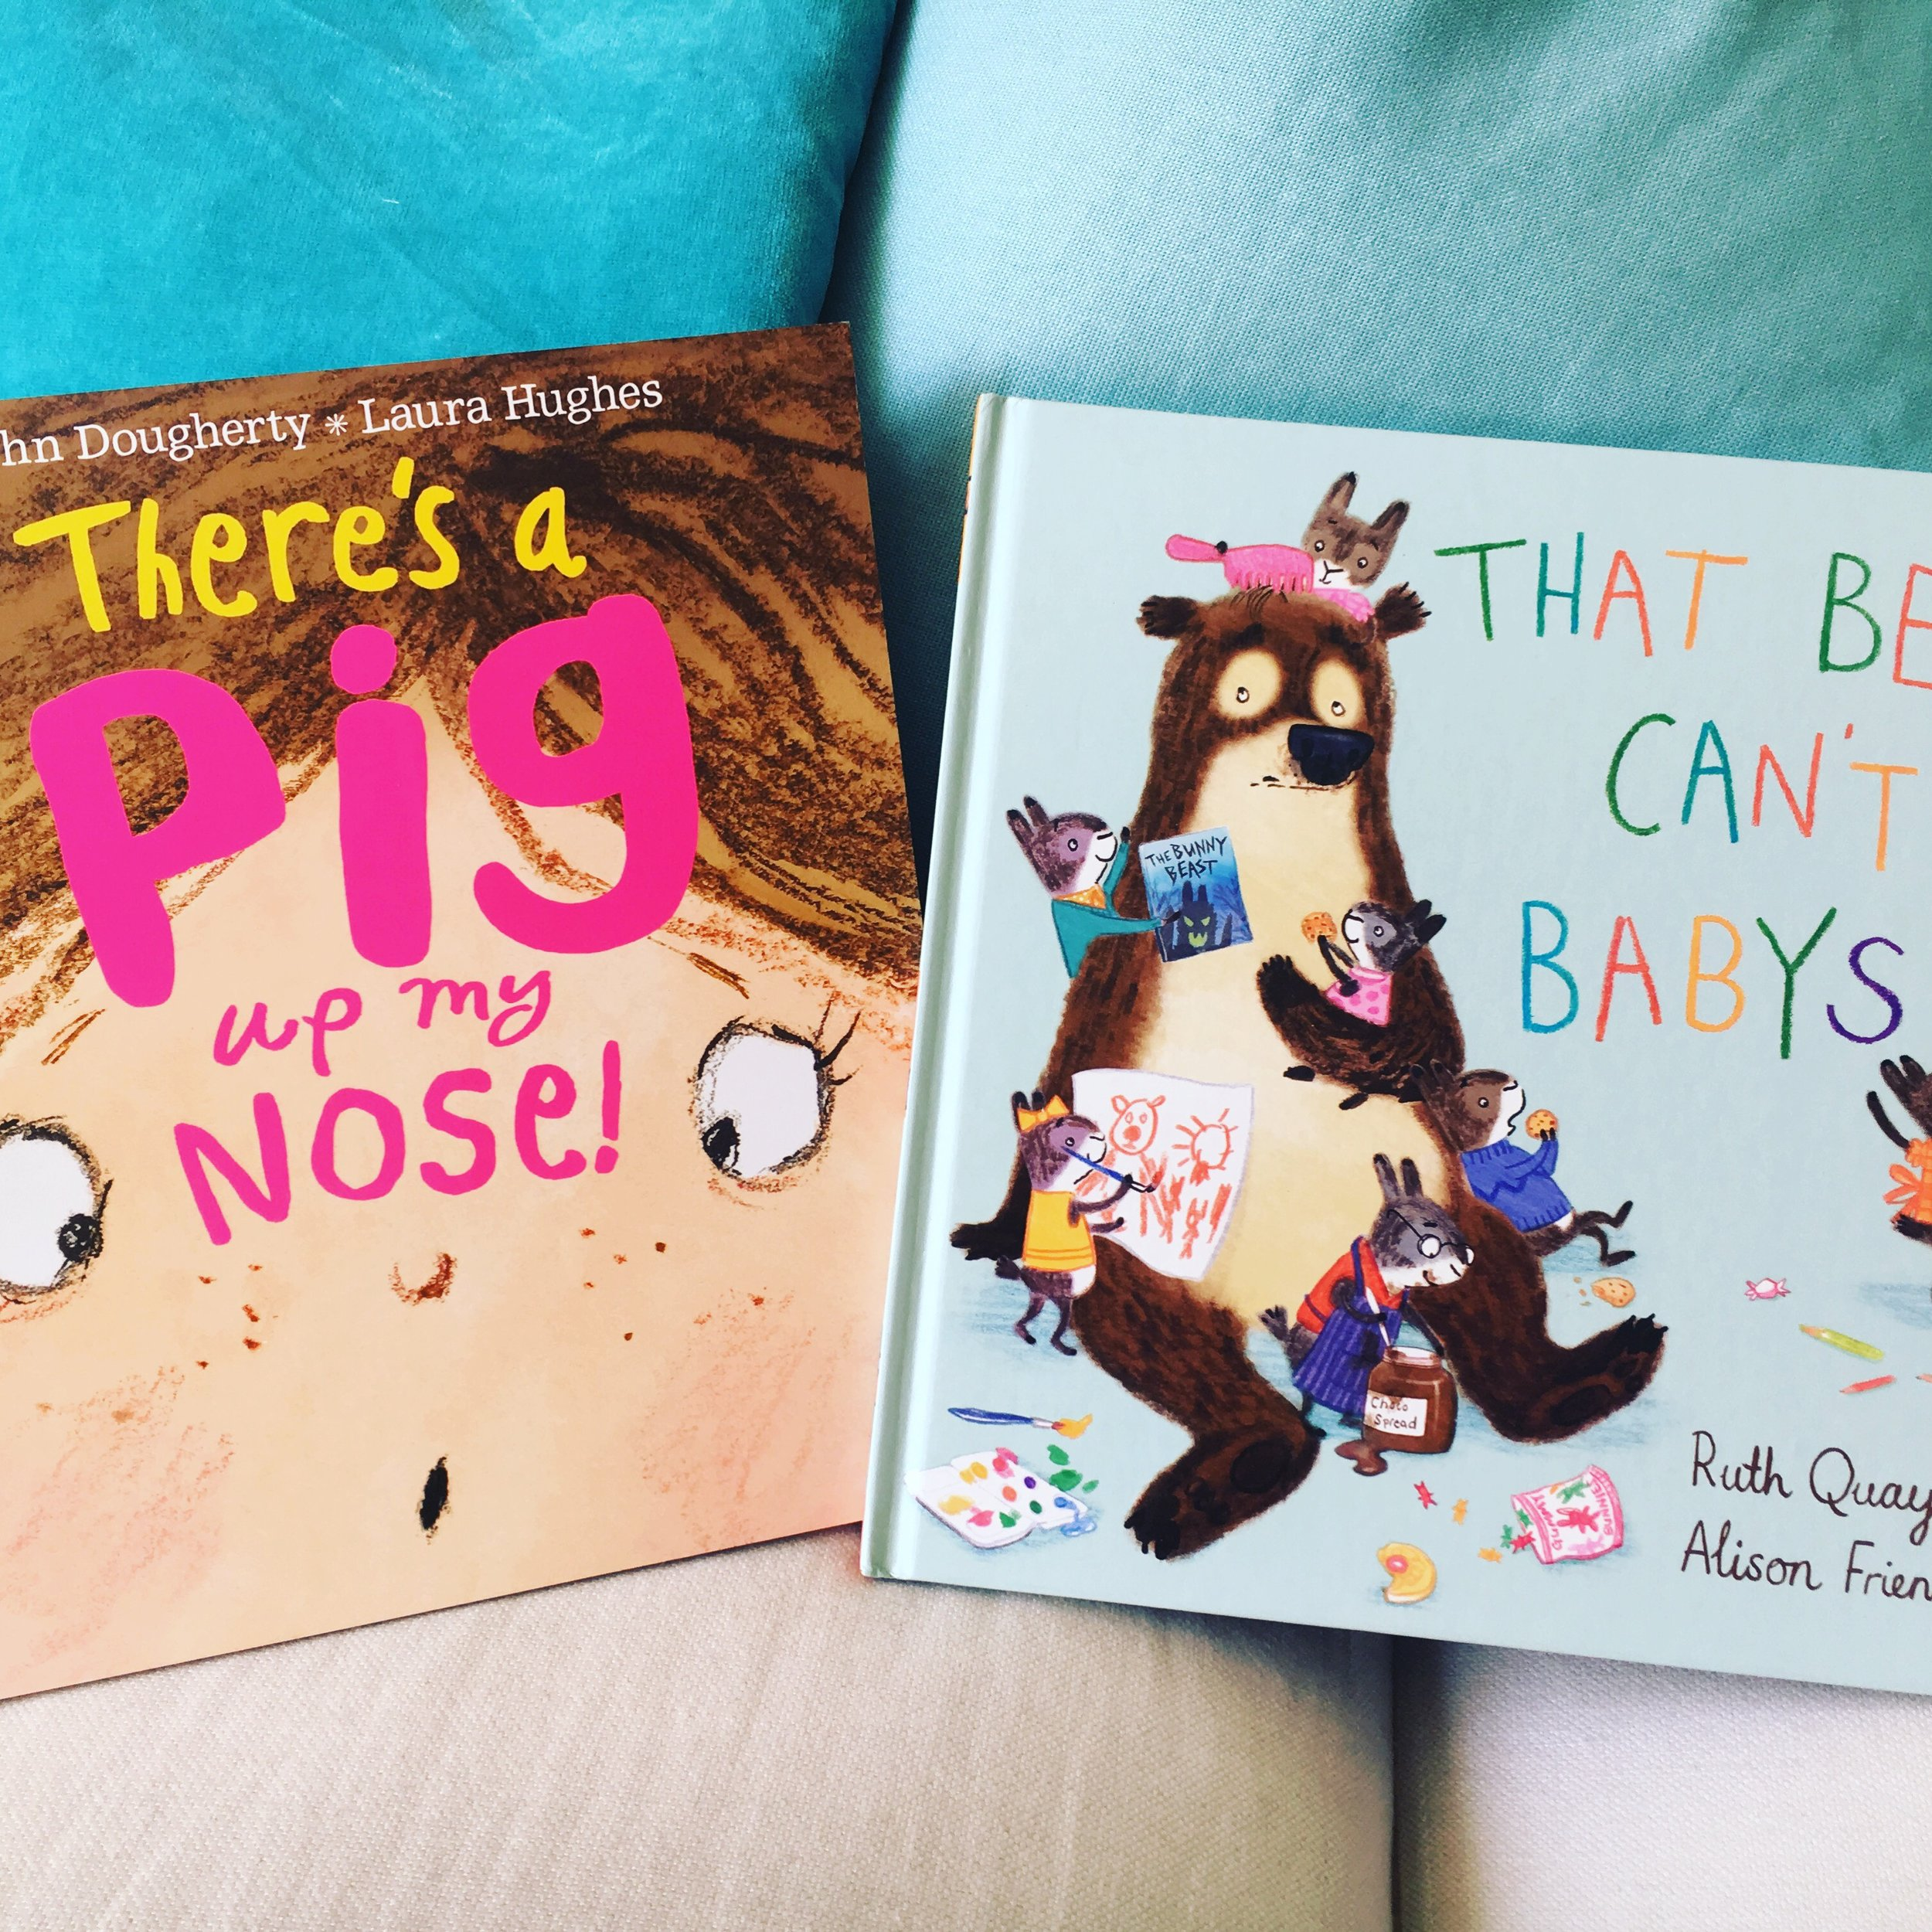 Two of this year's shortlisted titles: The authors and illustrators of That Bear Can't Babysit and There's a Pig Up My Nose will be at an Oscar's Book Prize-themed session at the Barnes Children's Literature Festival on 12 may